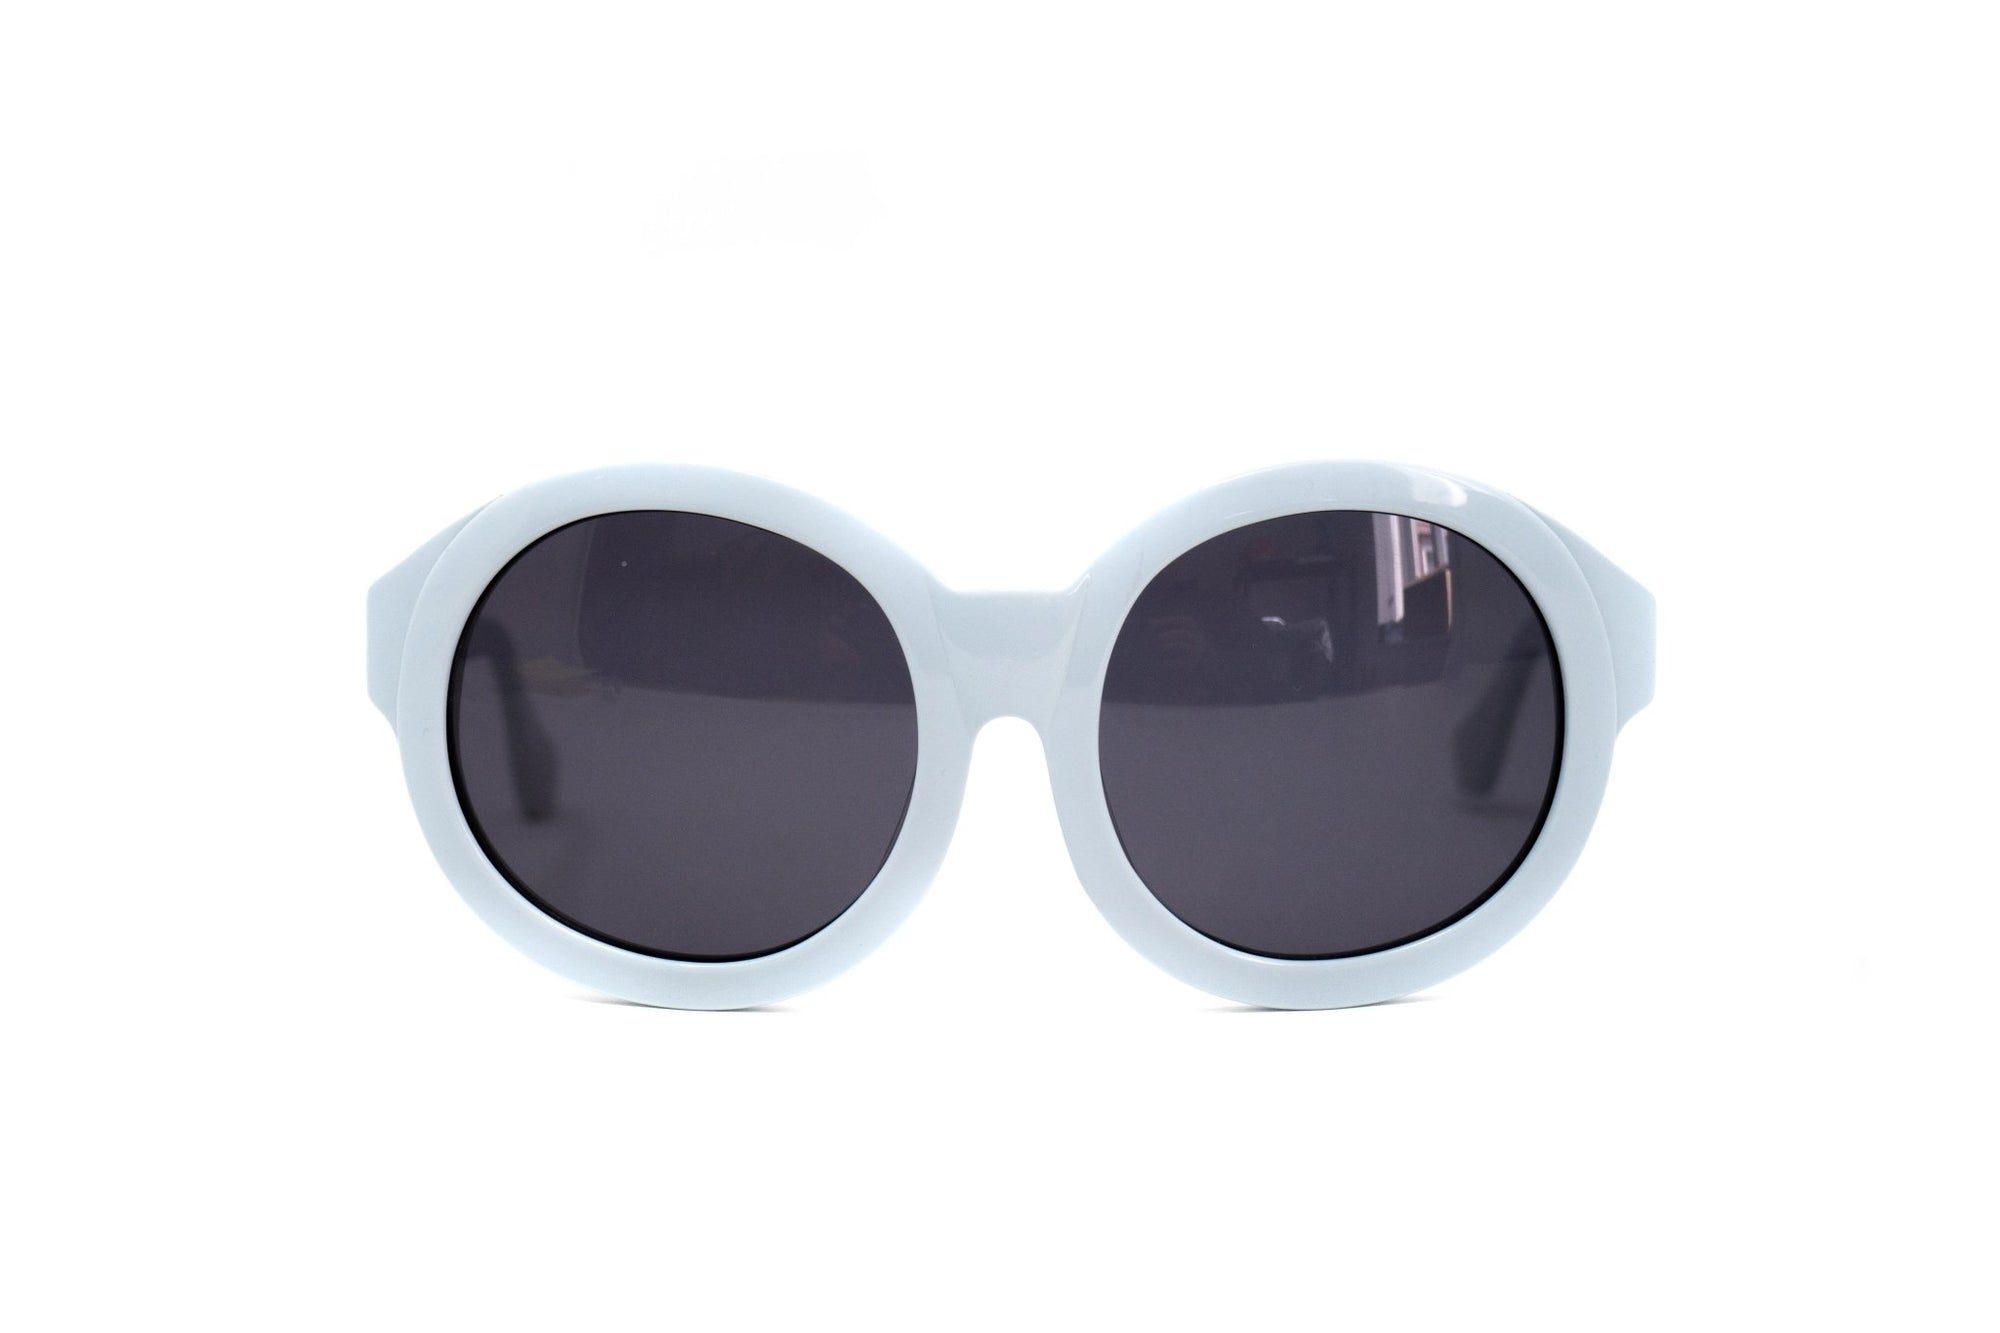 Eley Kishimoto Sunglasses Oversized Round Baby Blue With Grey Category 3 Lenses EK27C3SUN - Watches & Crystals